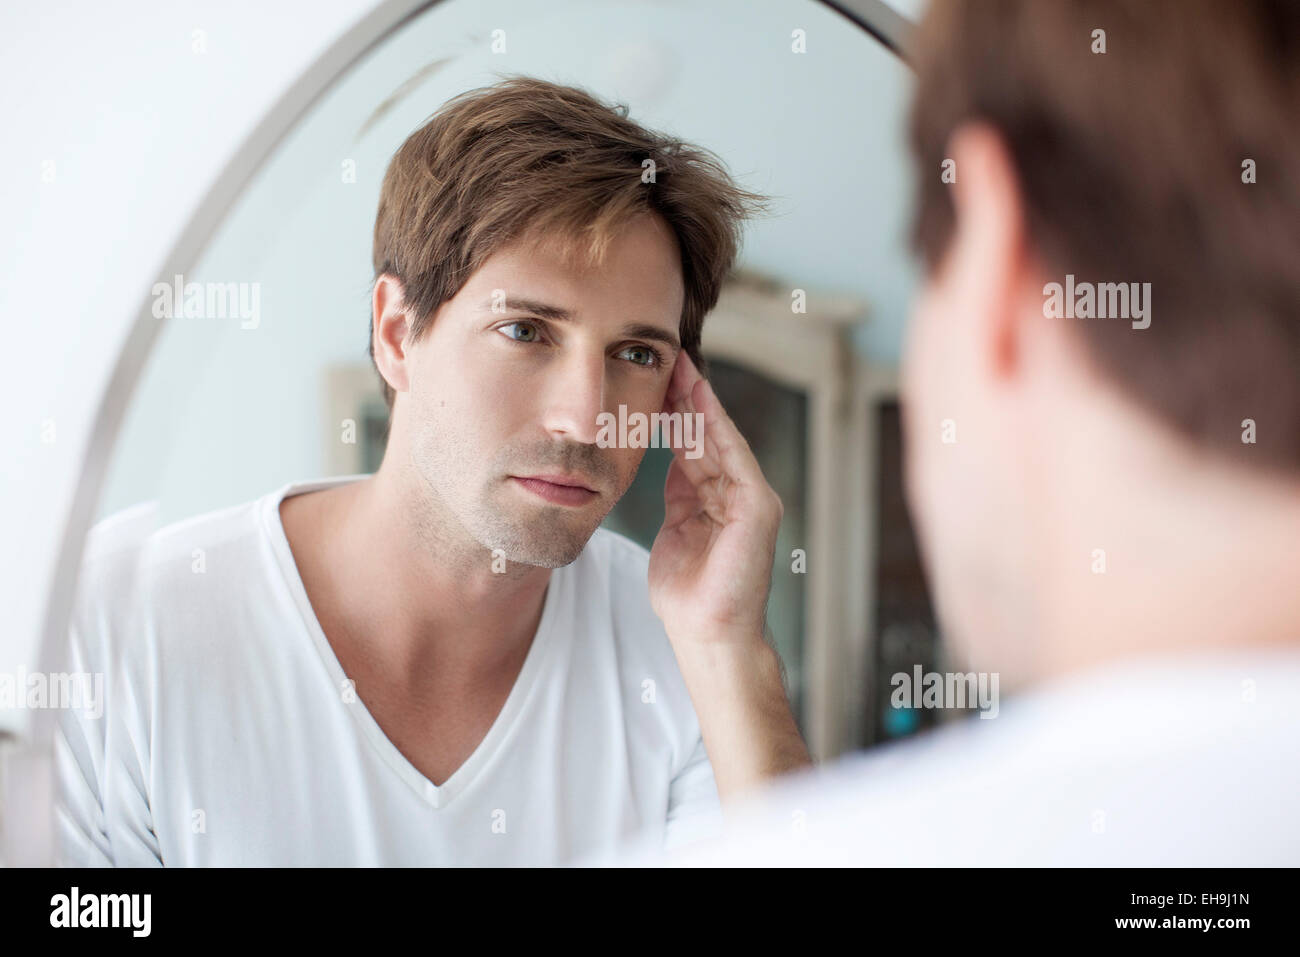 Man looking at self in mirror with concerned look - Stock Image